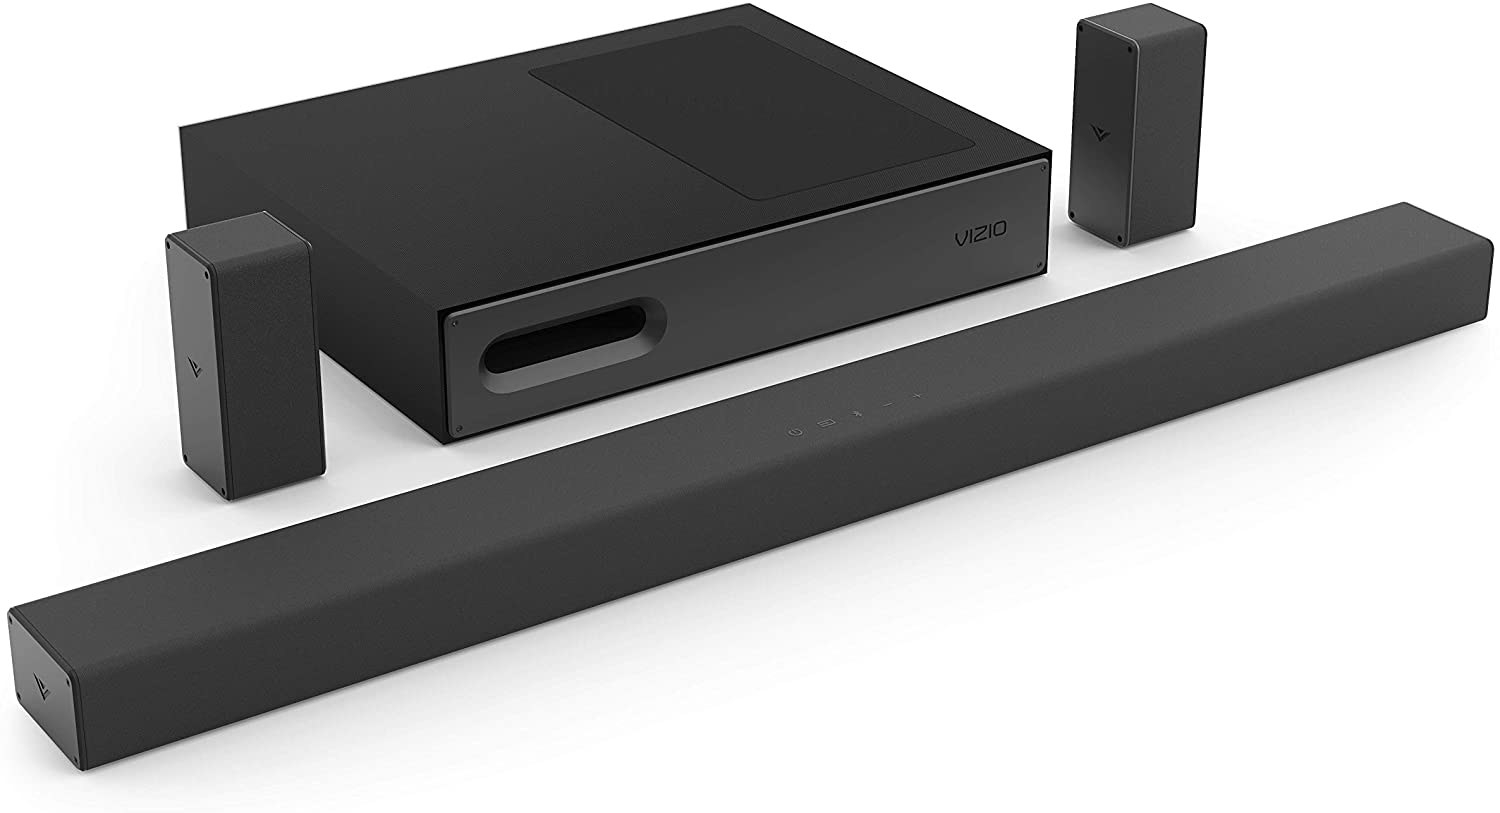 the sound bar and subwoofer